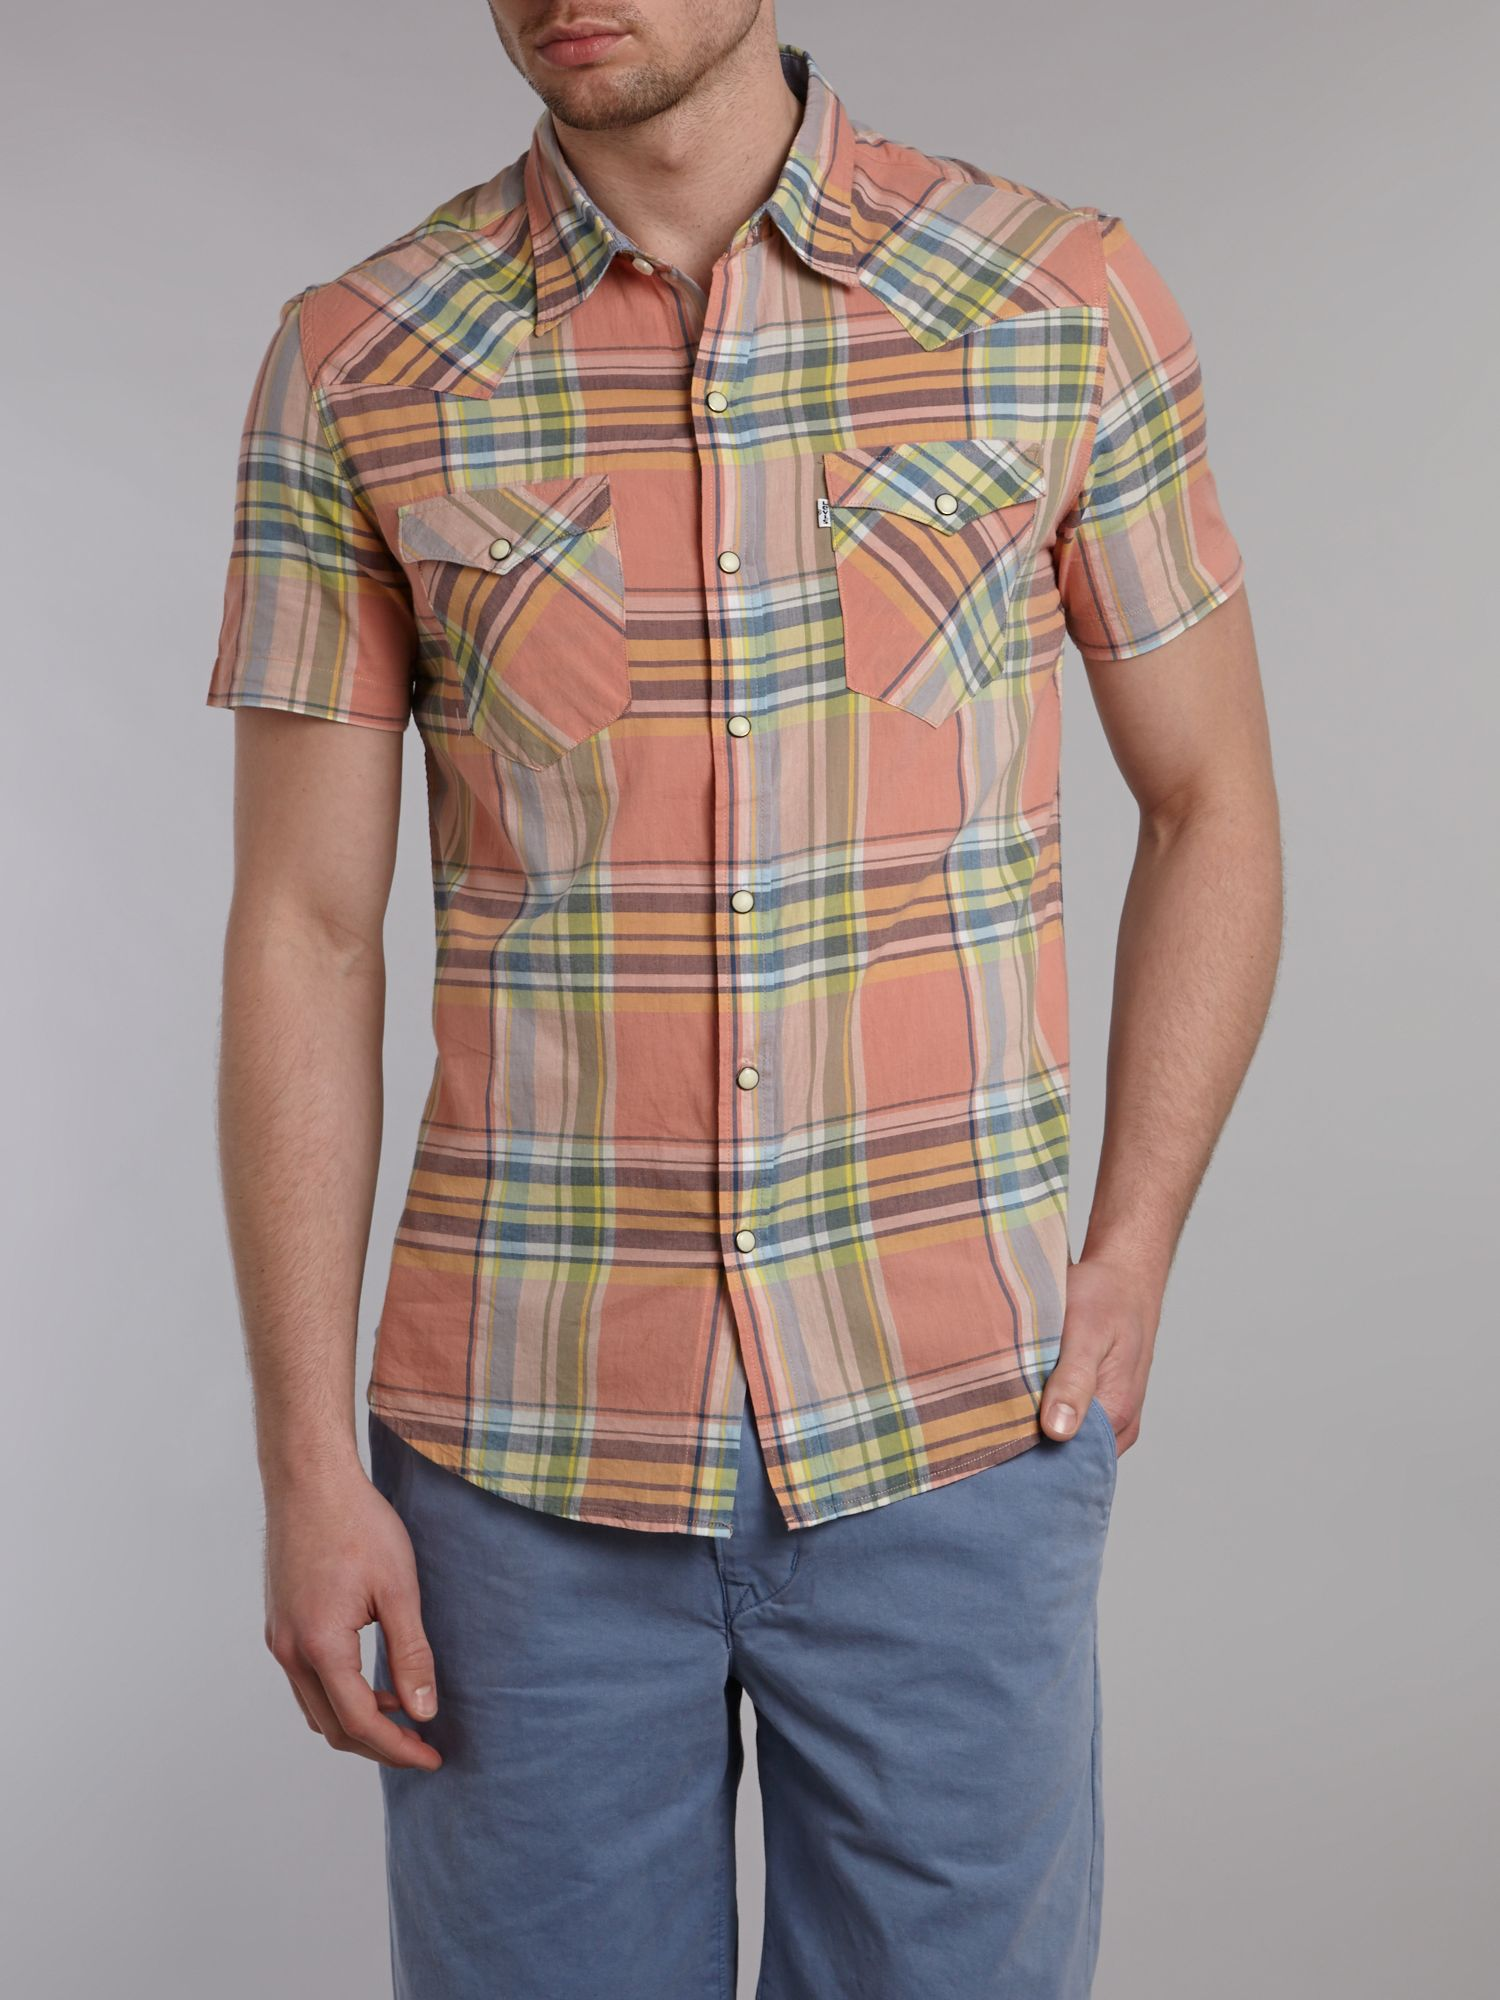 Barstow checked shirt